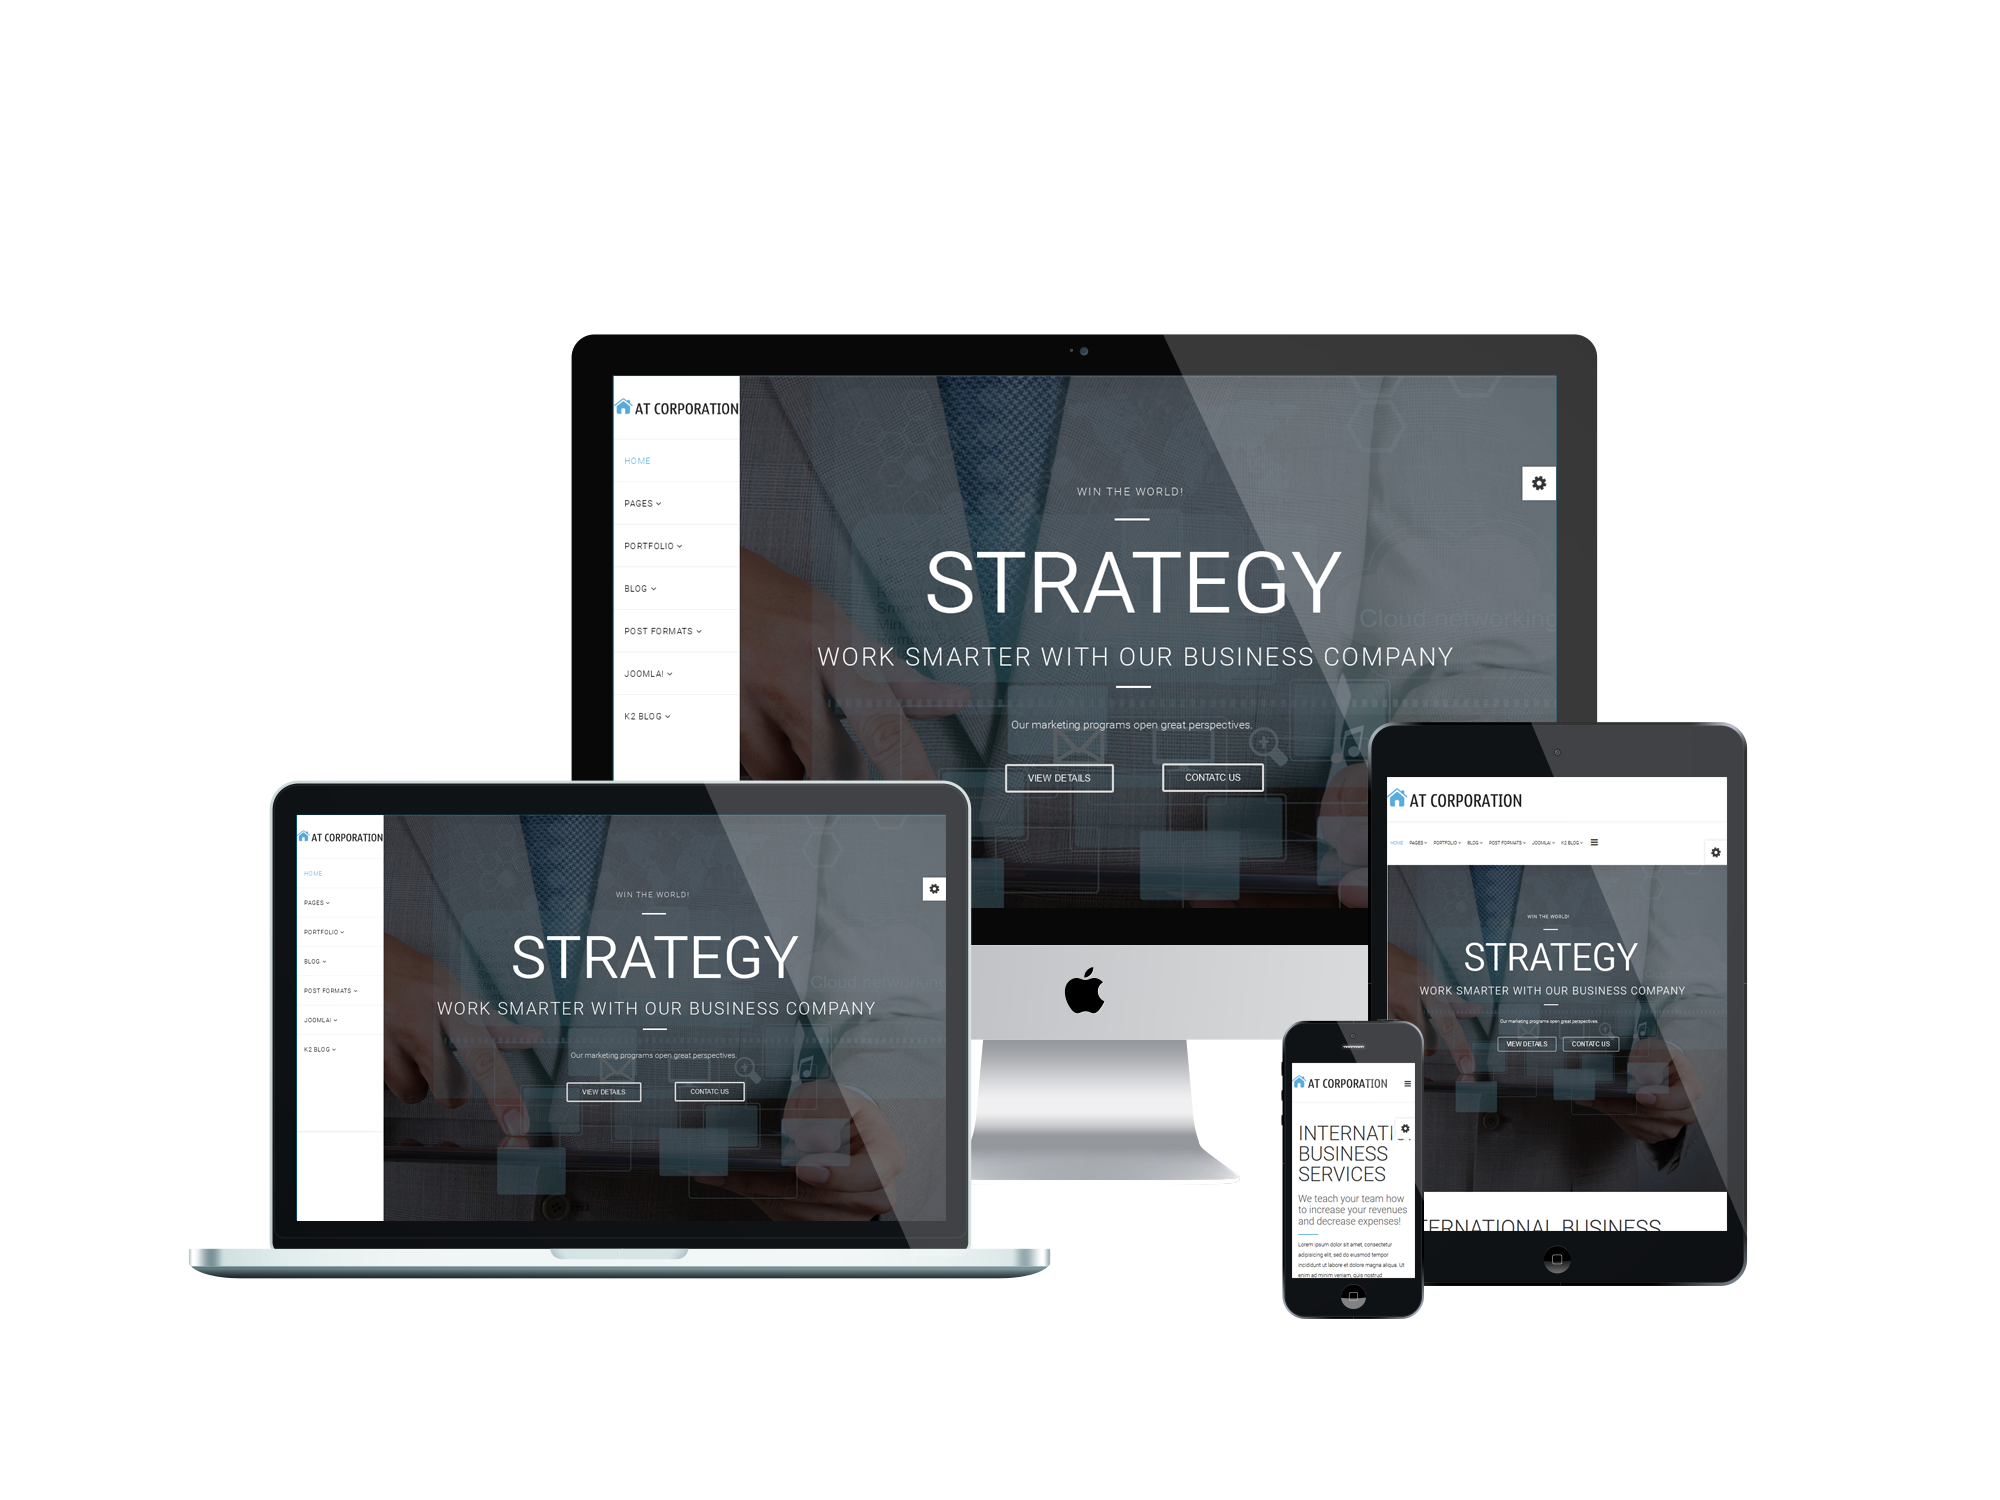 at-corporation-responsive-layout.png